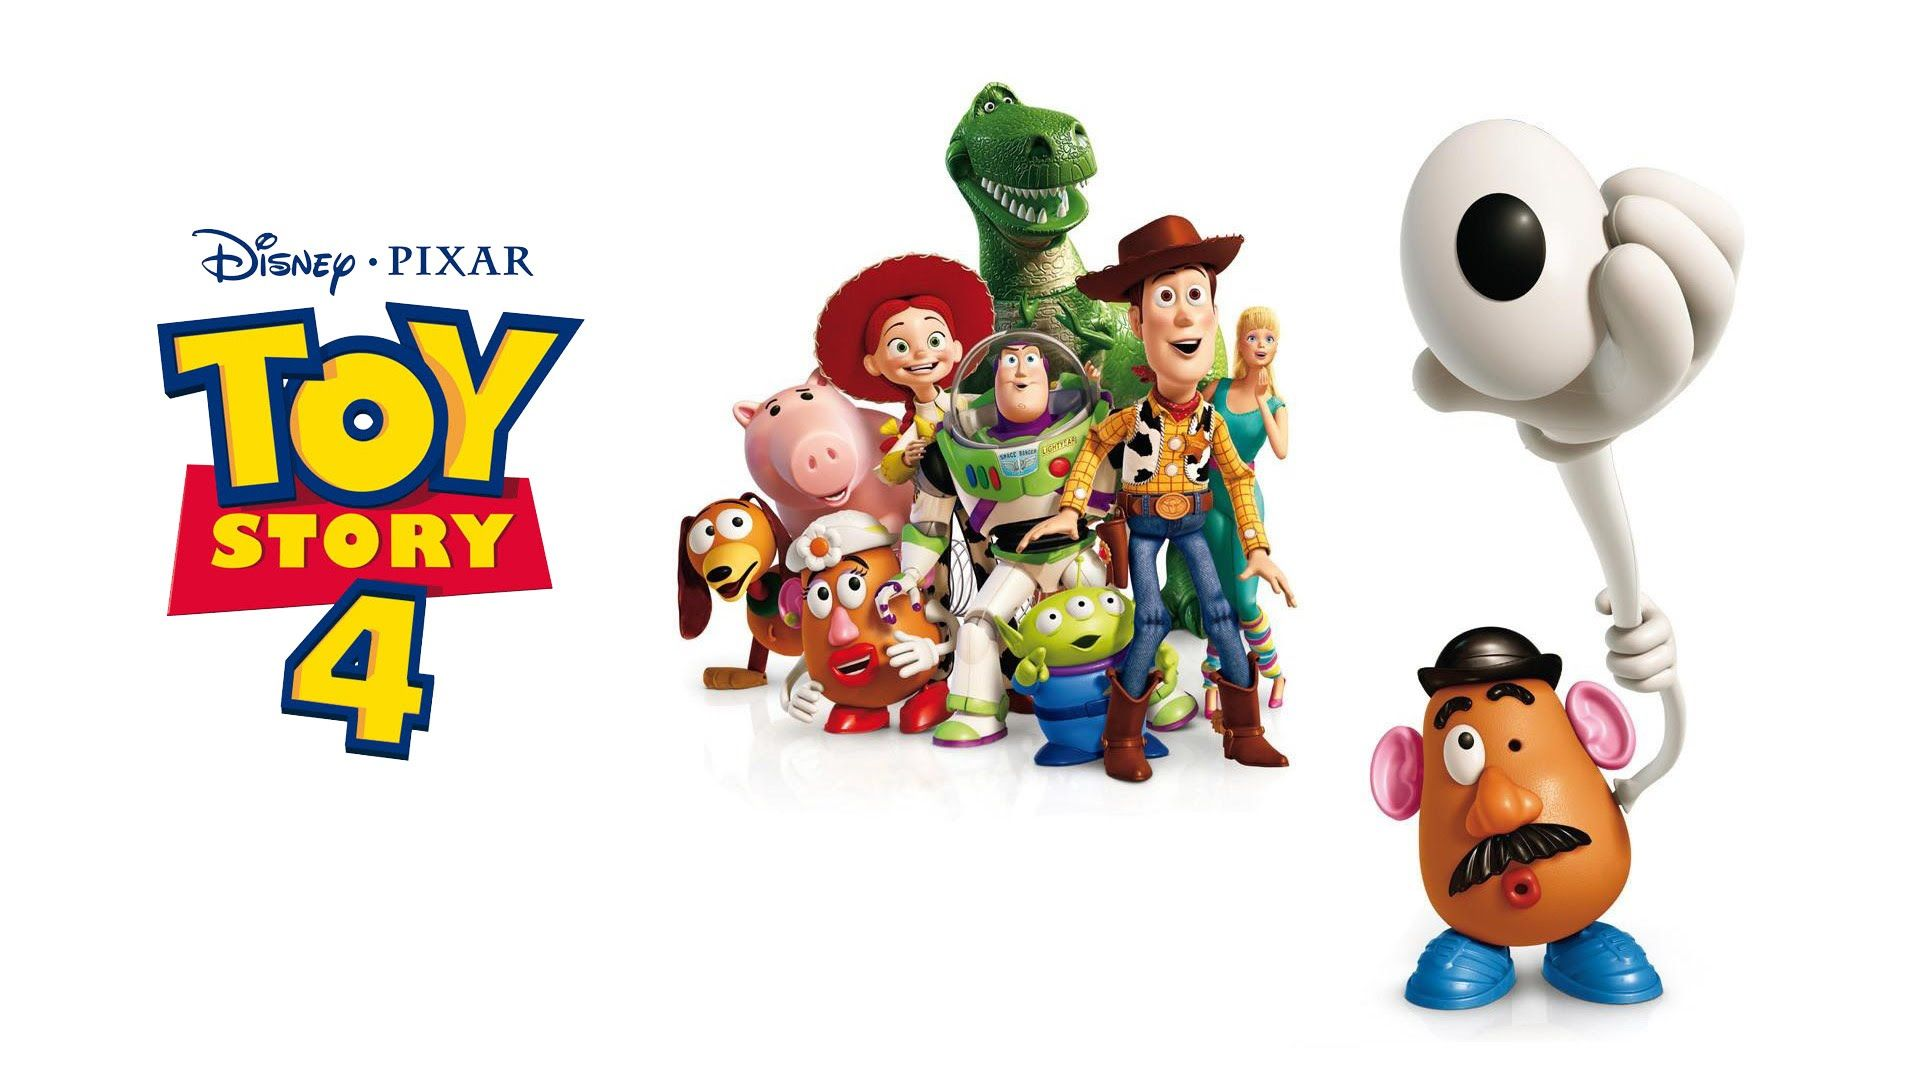 Toy Story 4 Official Teaser Trailer  1 (2017) - Pixar Movie HD ... 13975e422aa